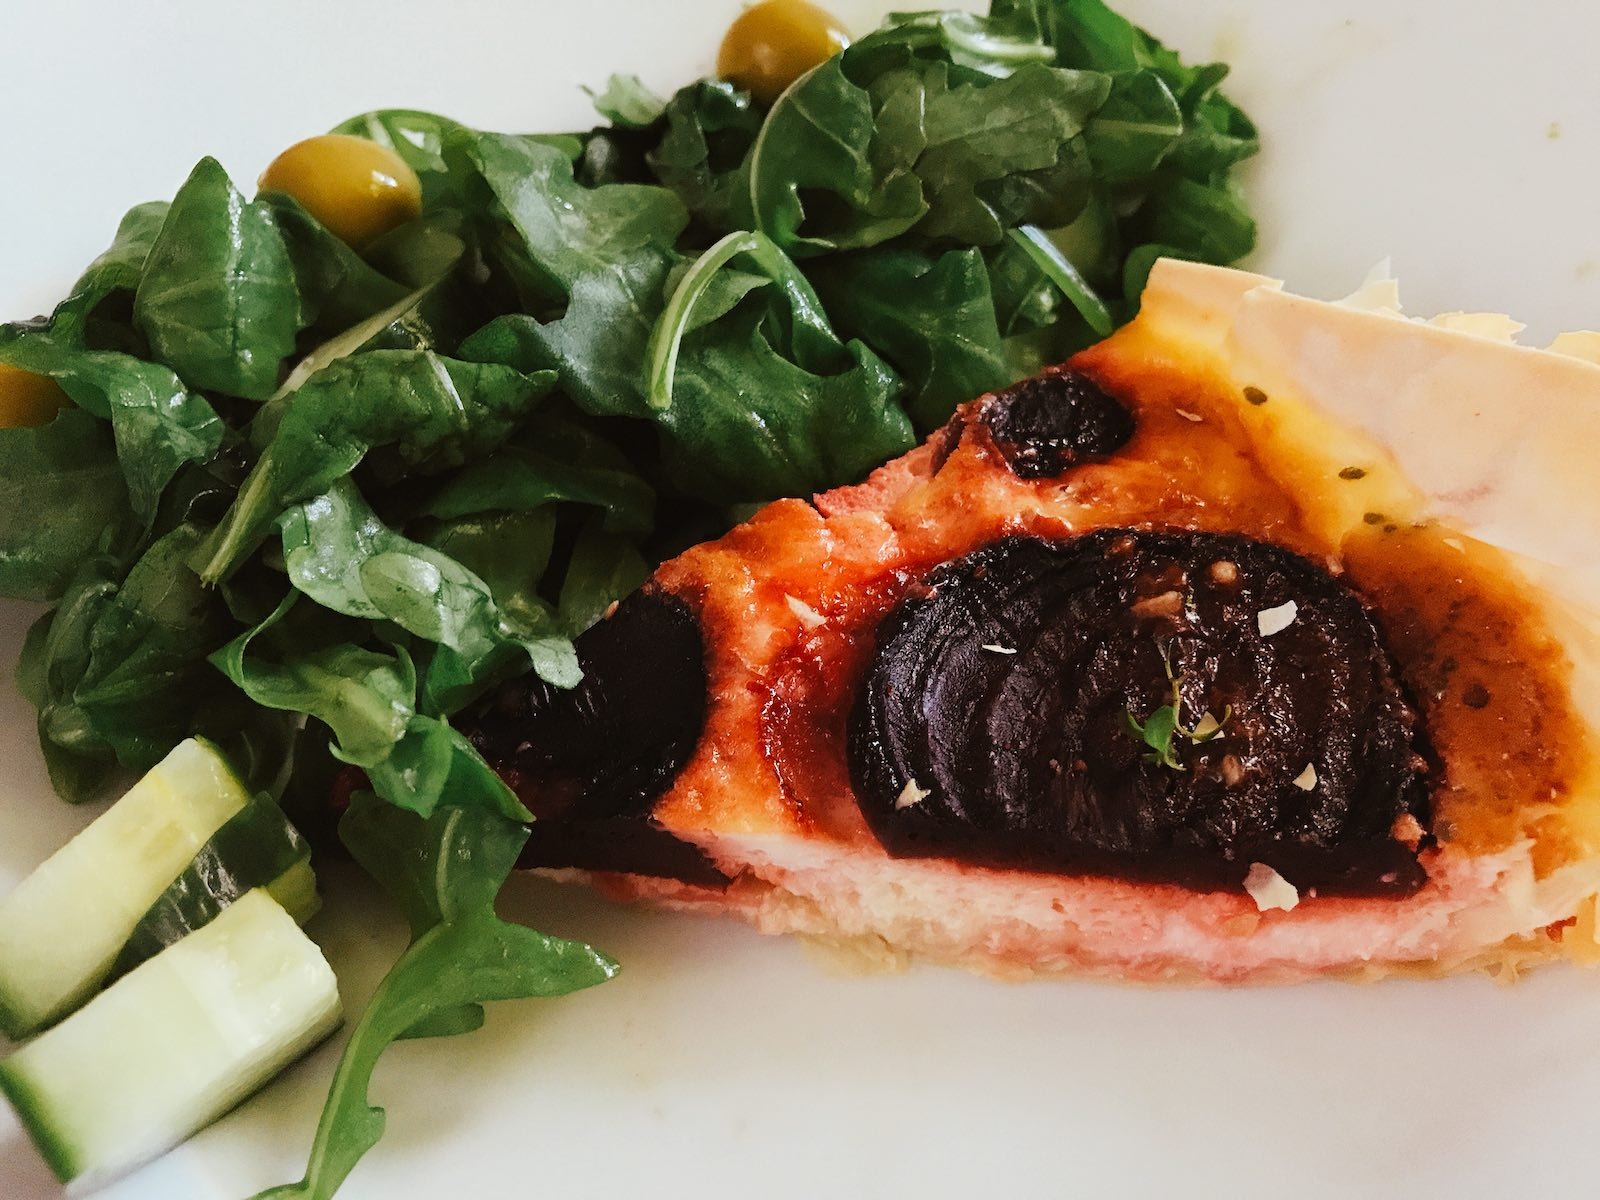 Beetroot quiche slice with salad